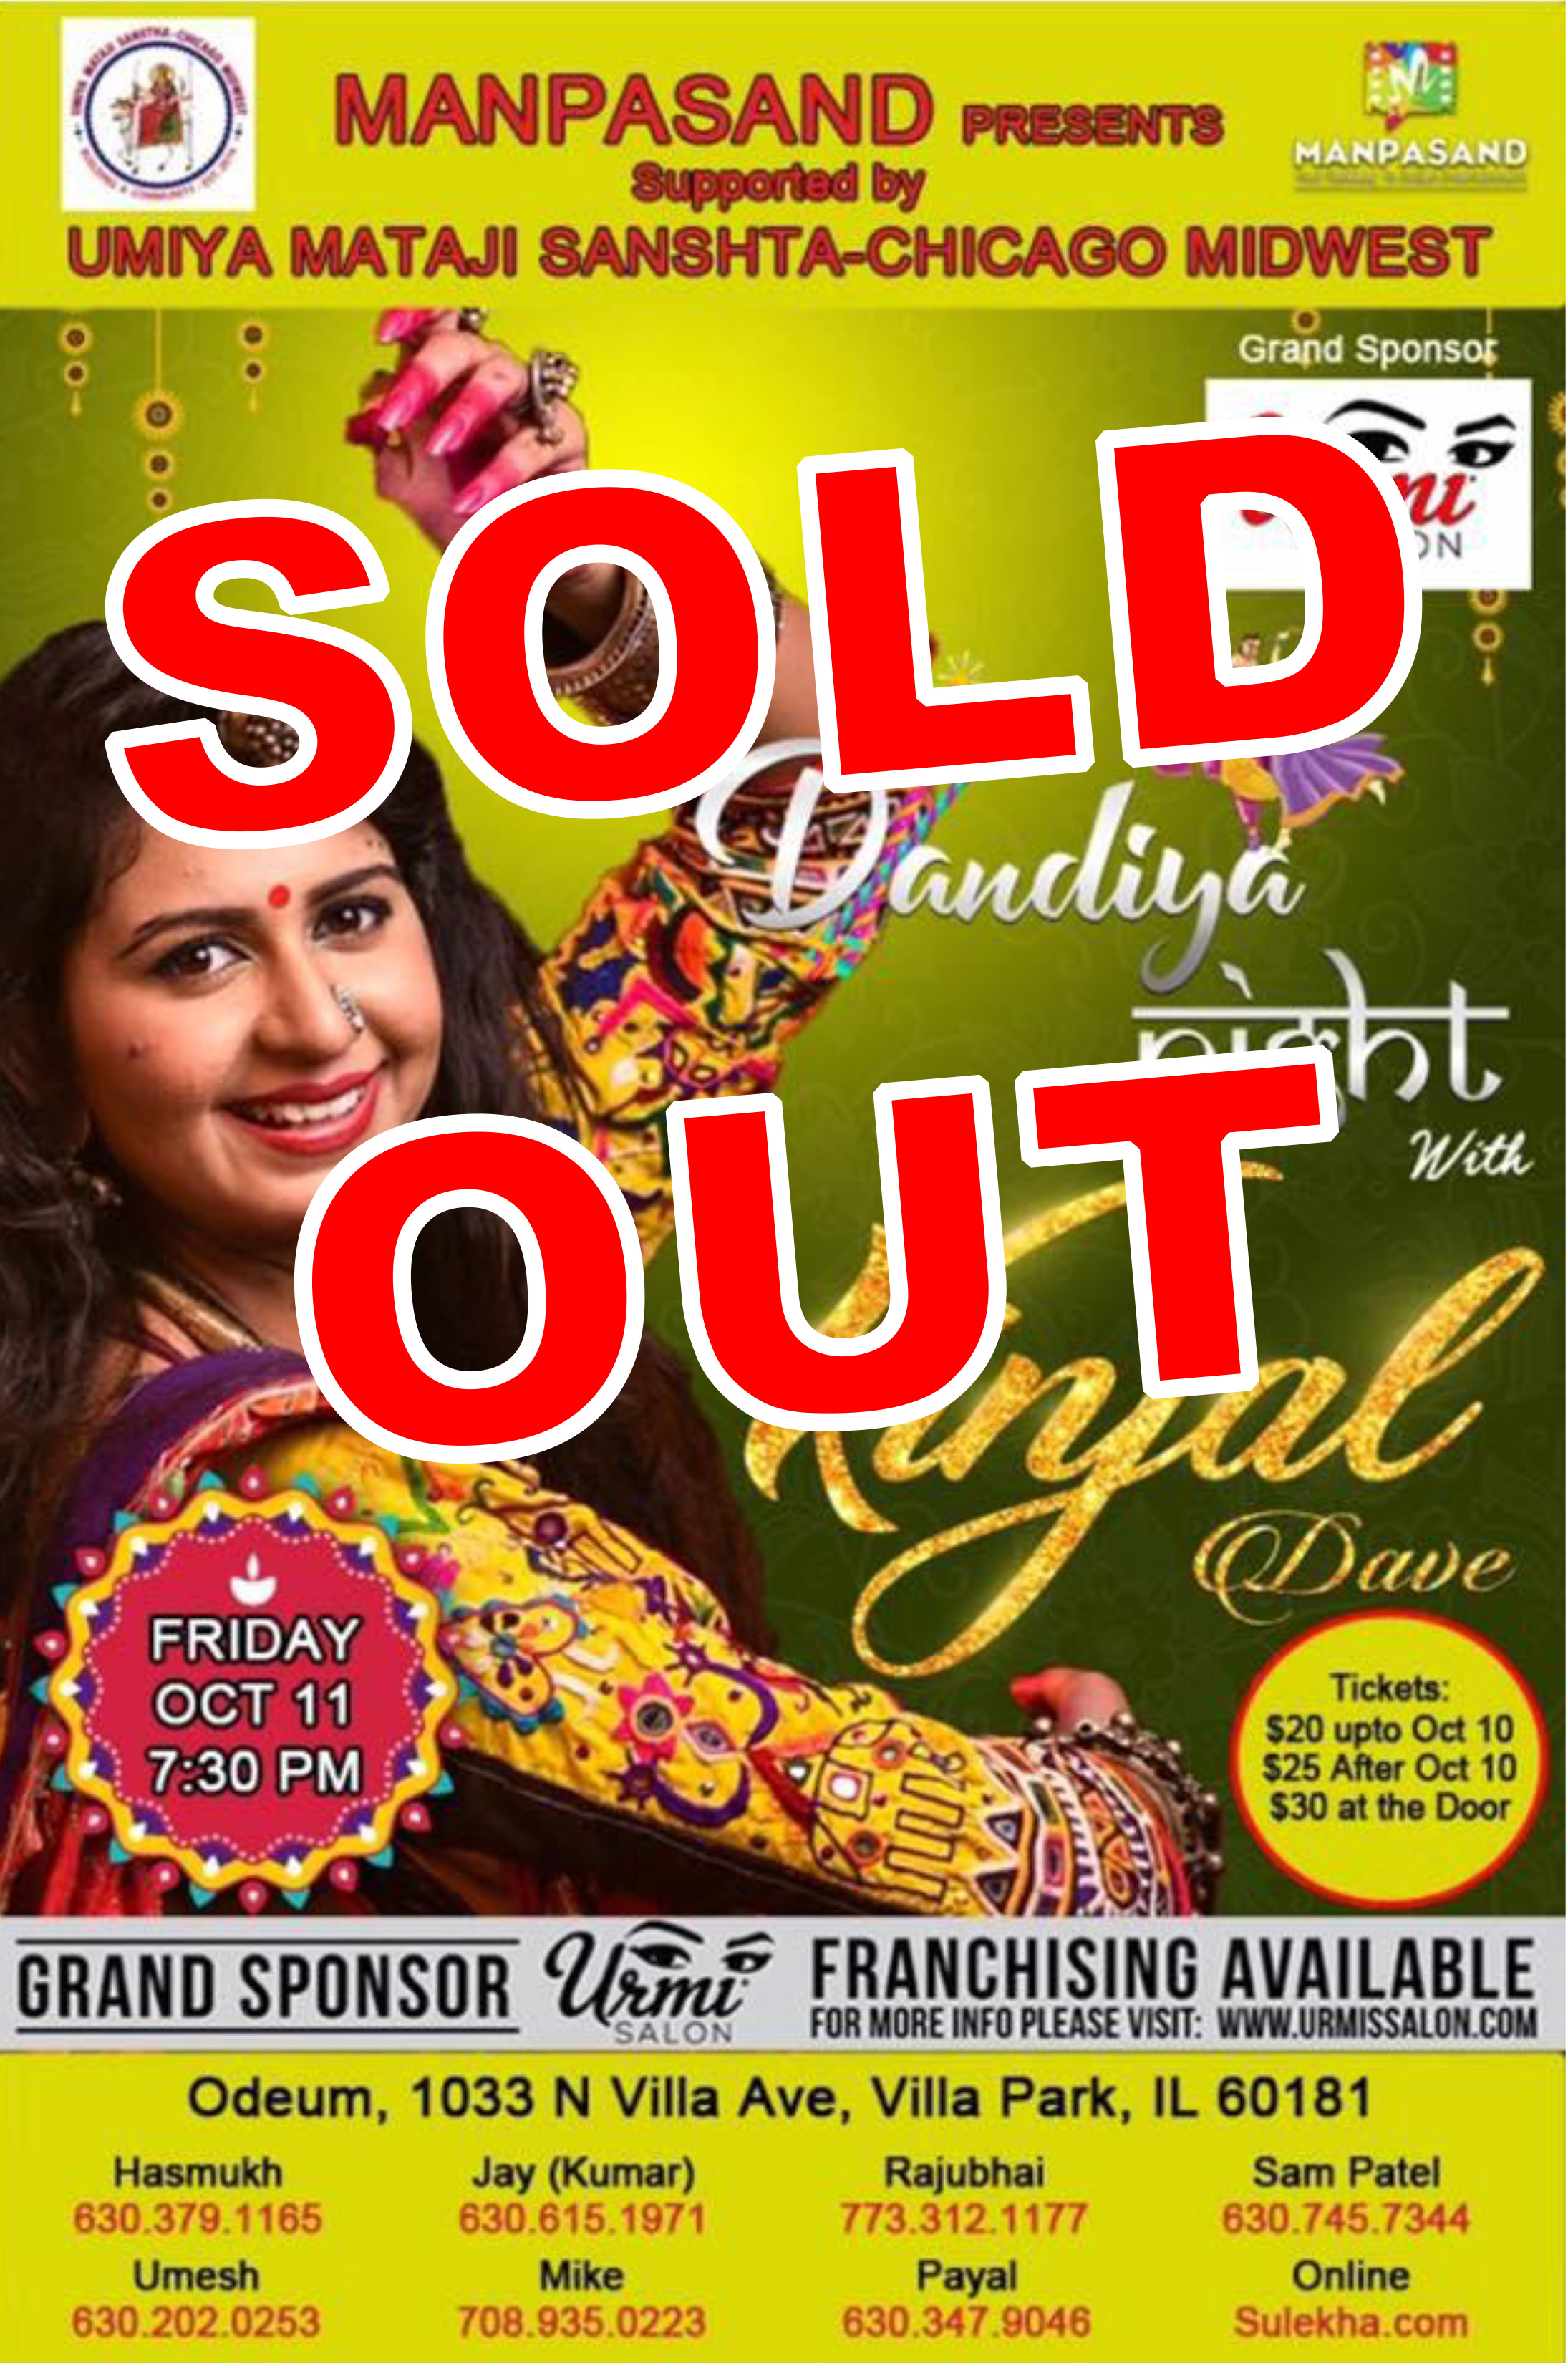 Kinjal Dave is SOLD OUT for October 11th at the Odeum Expo Center